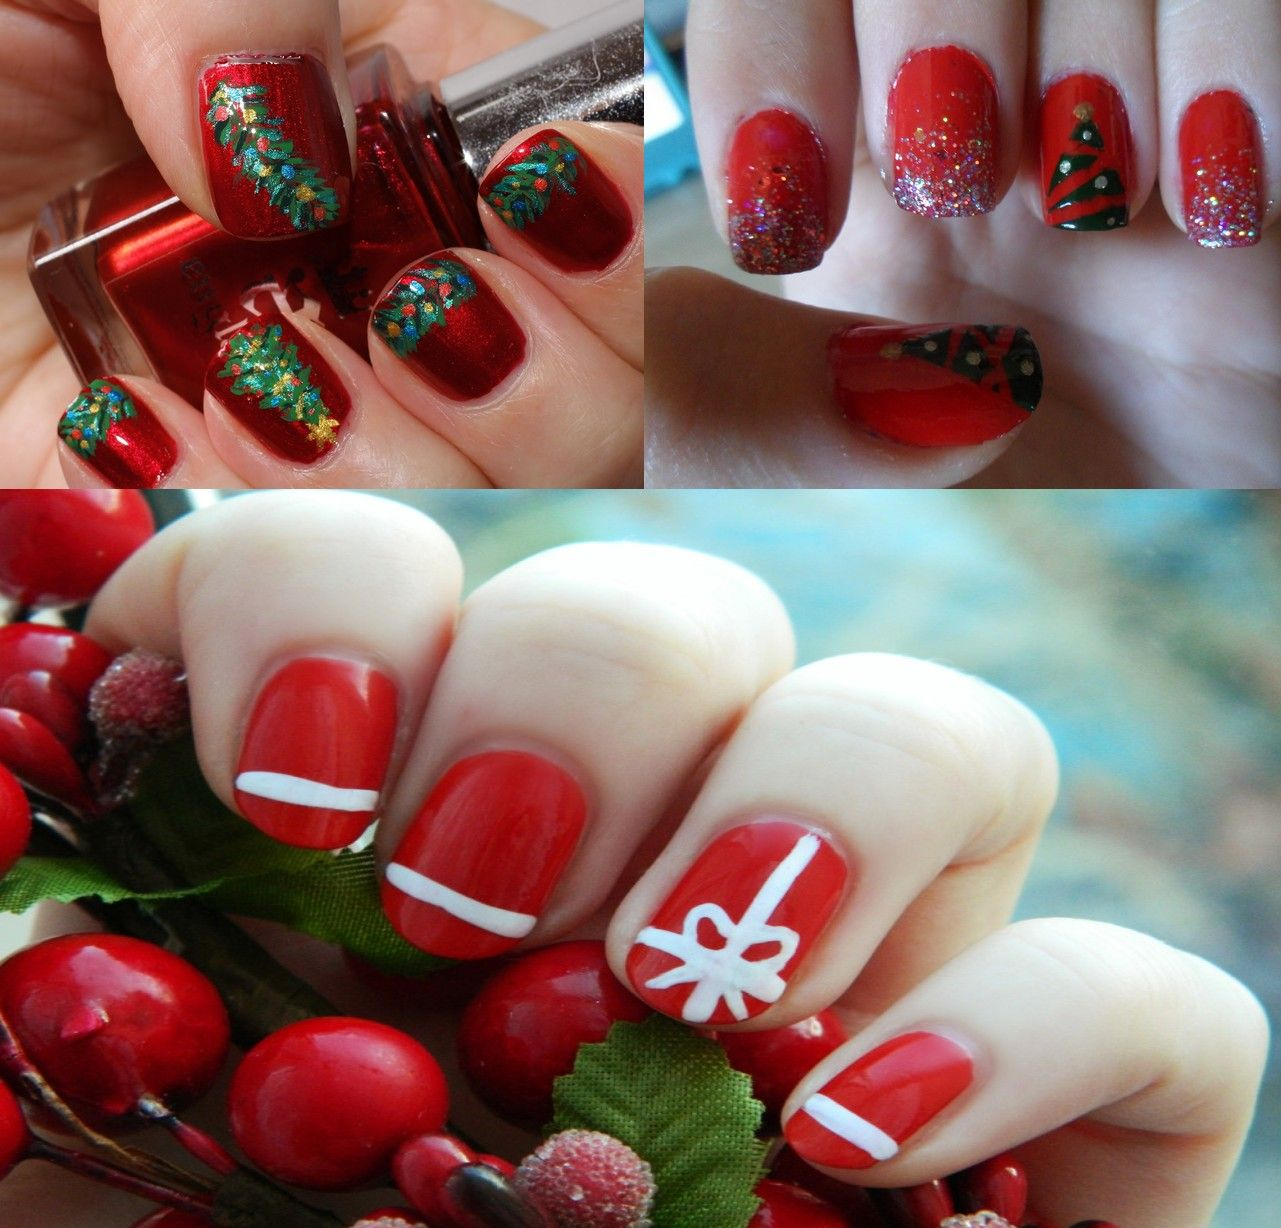 Beautiful Nail Art Designs,Delightful Christmas Nail Art Designs,DIY Cool  And Easy Christmas Nail Art Designs,Best Nail Art Designs For Christmas,Cool  And ... - Christmas Nail Designs - Google Search Arts & Crafts Pinterest